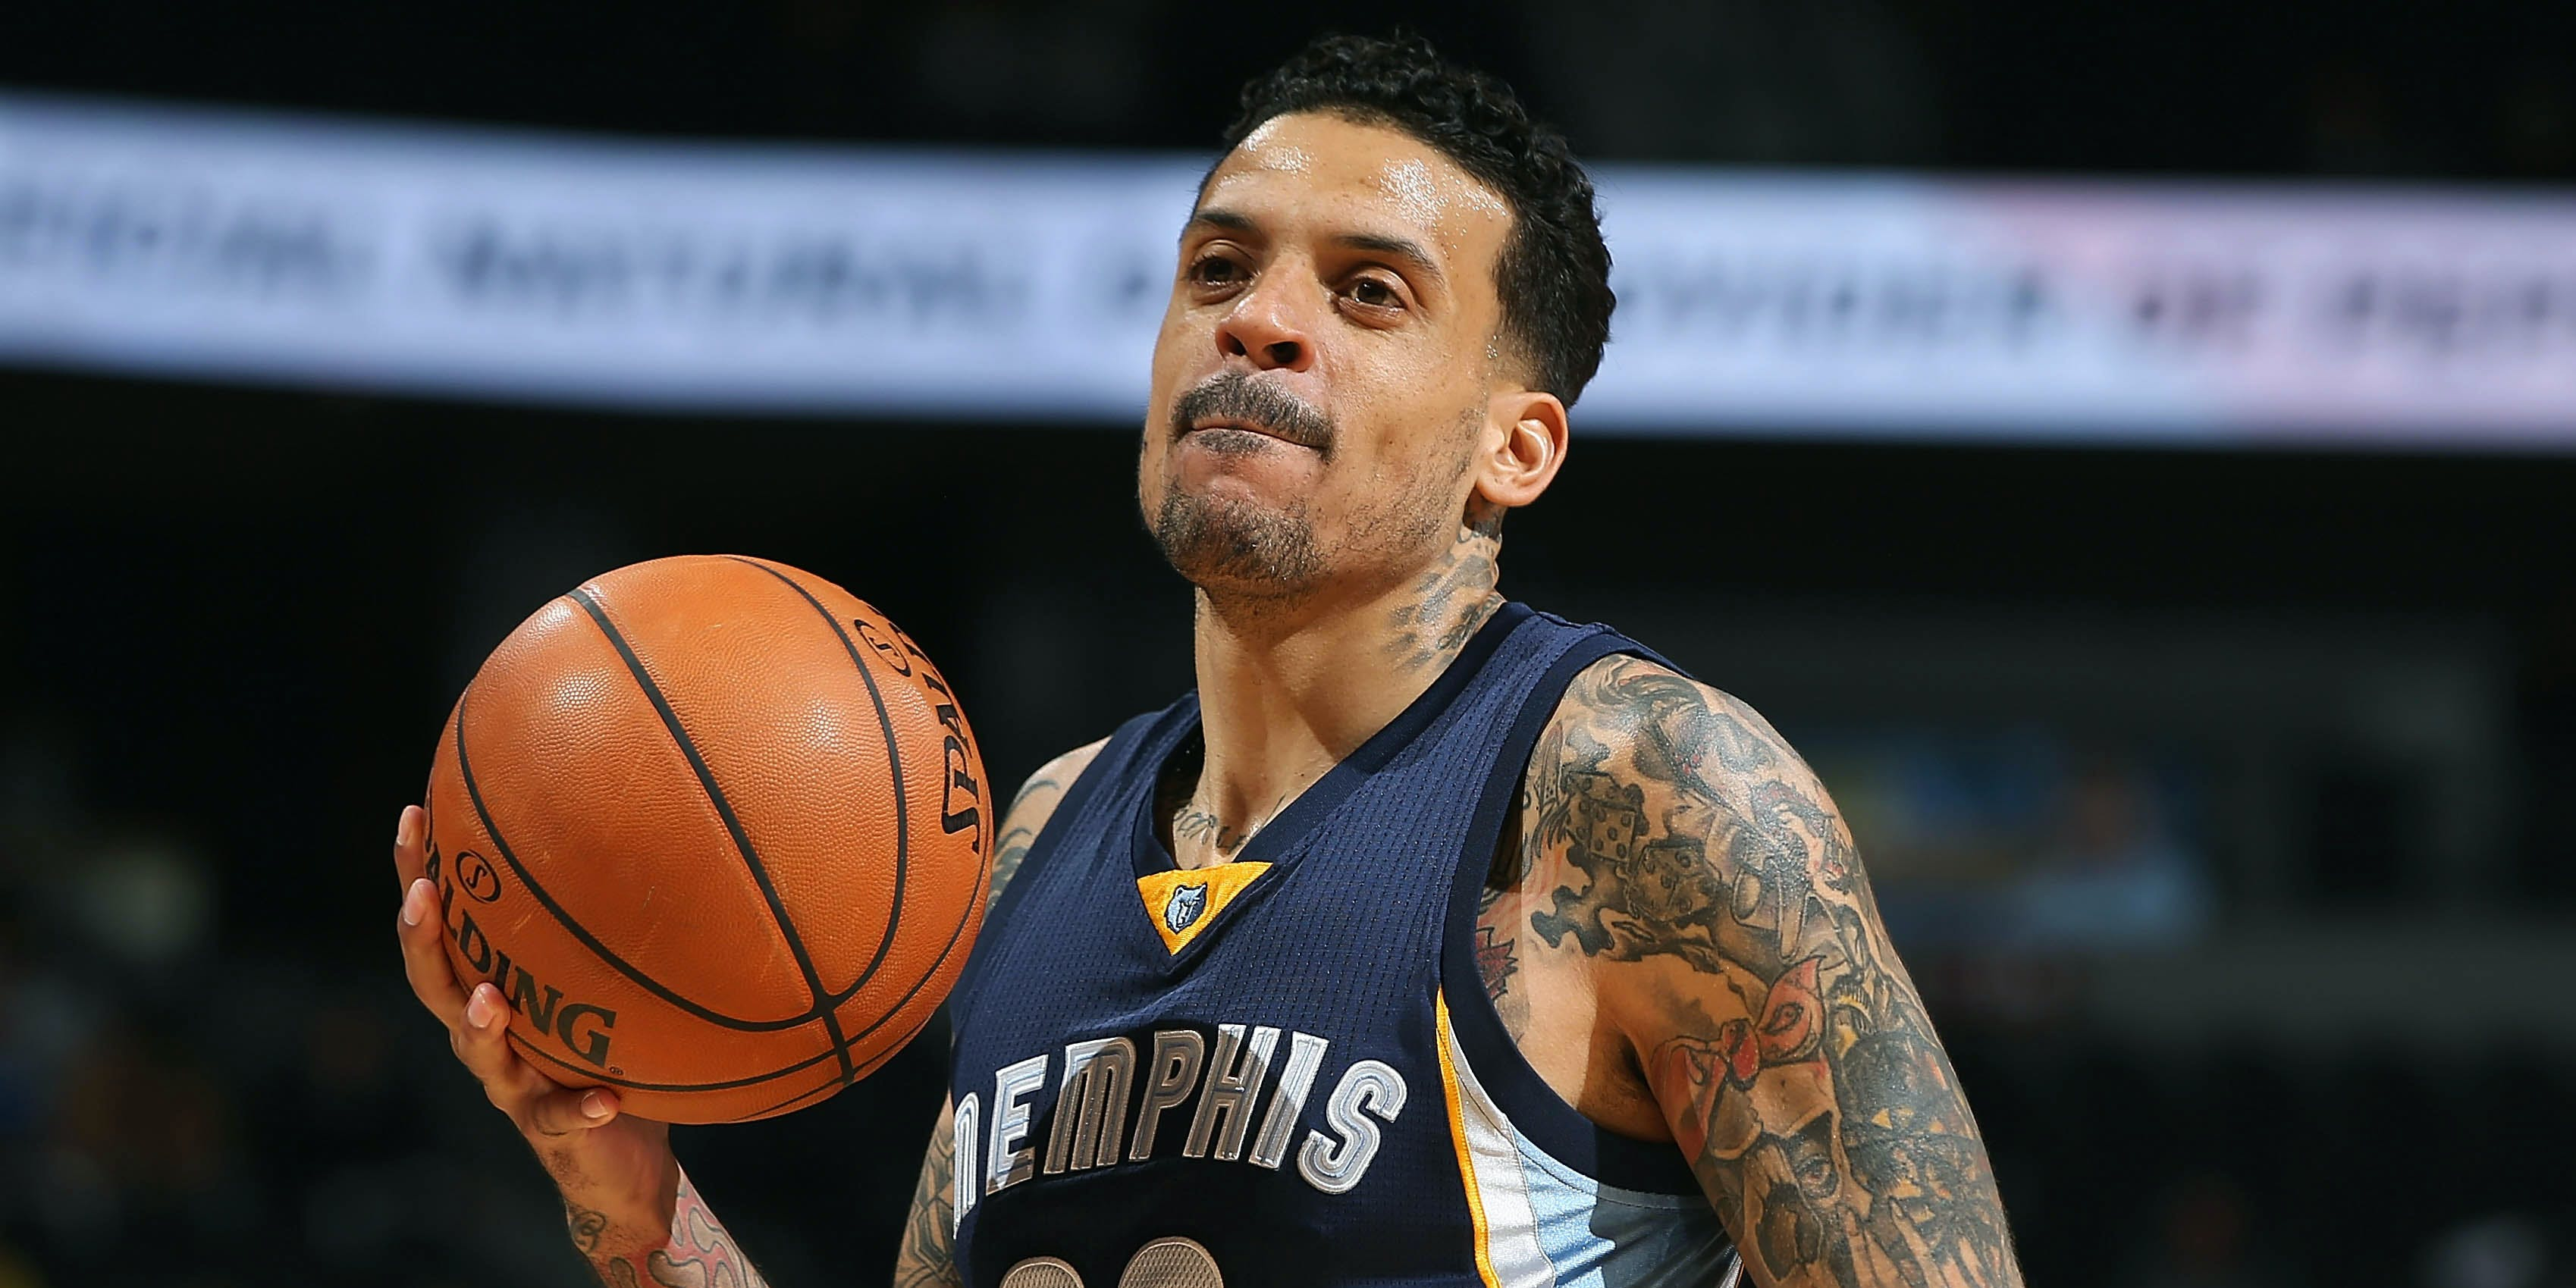 Matt Barnes holding a basketball and licking his lips while playing for the Grizzlies